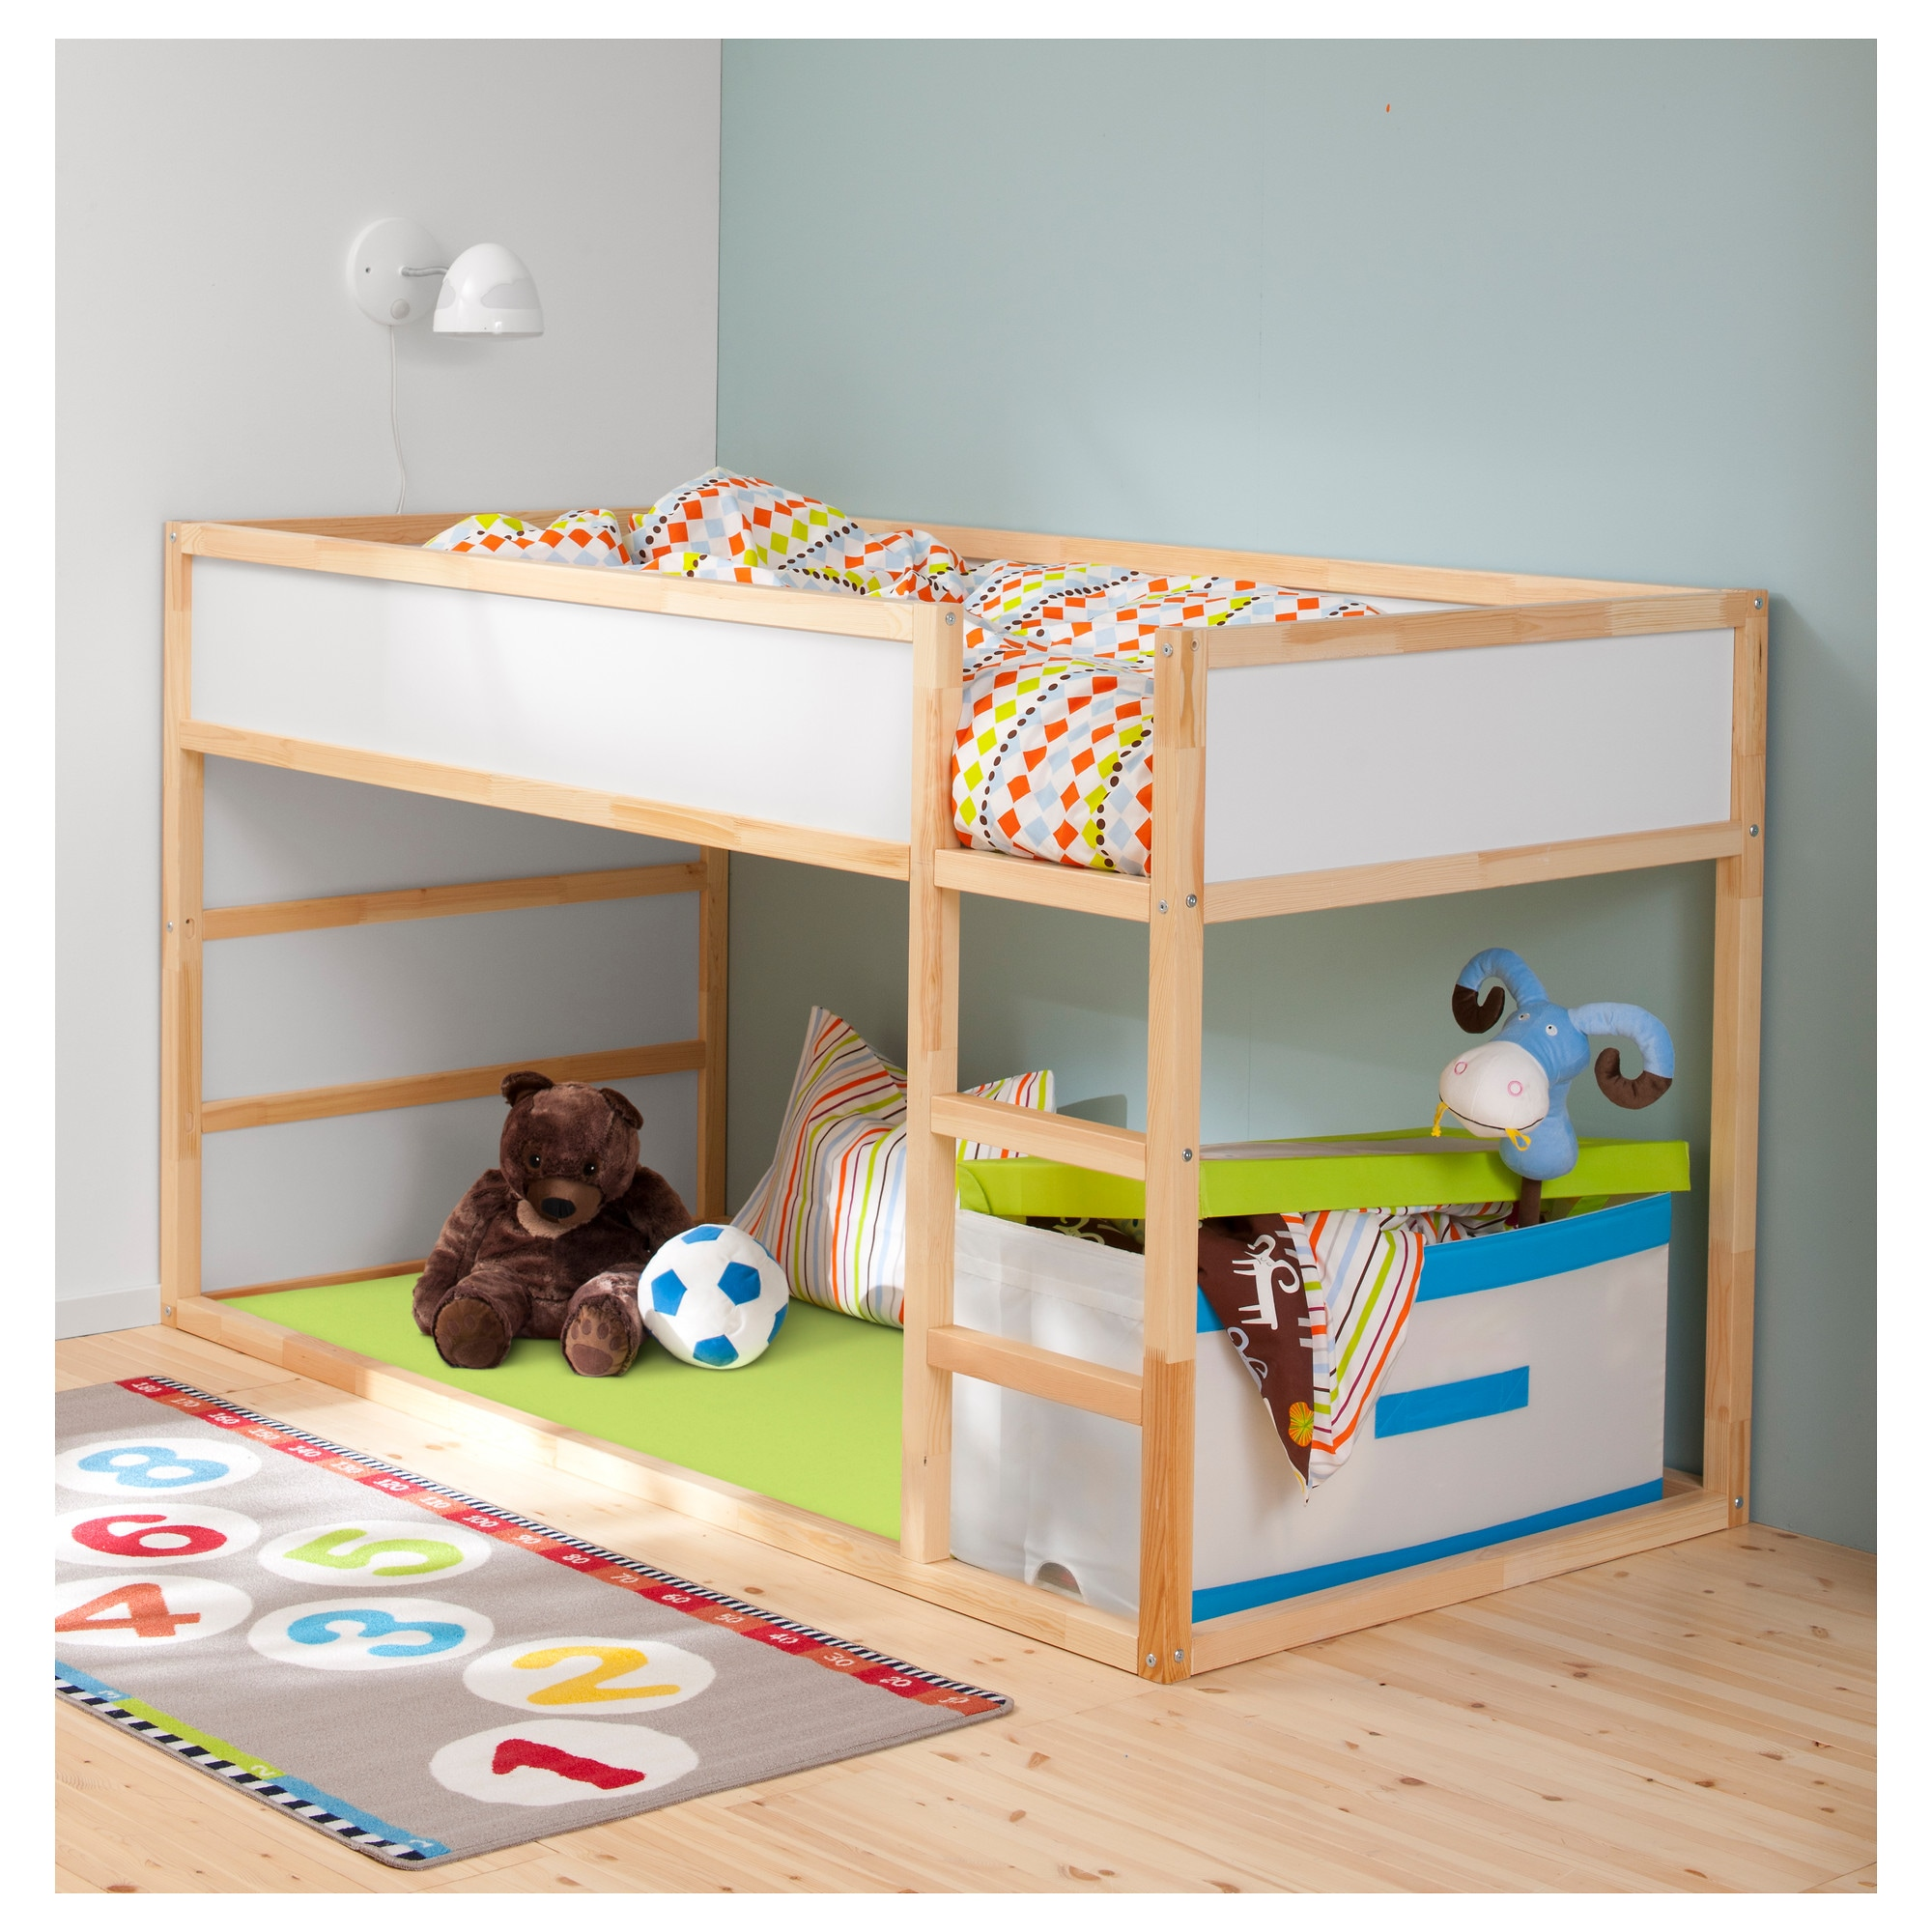 Bunk bed with desk ikea - Bunk Bed With Desk Ikea 9